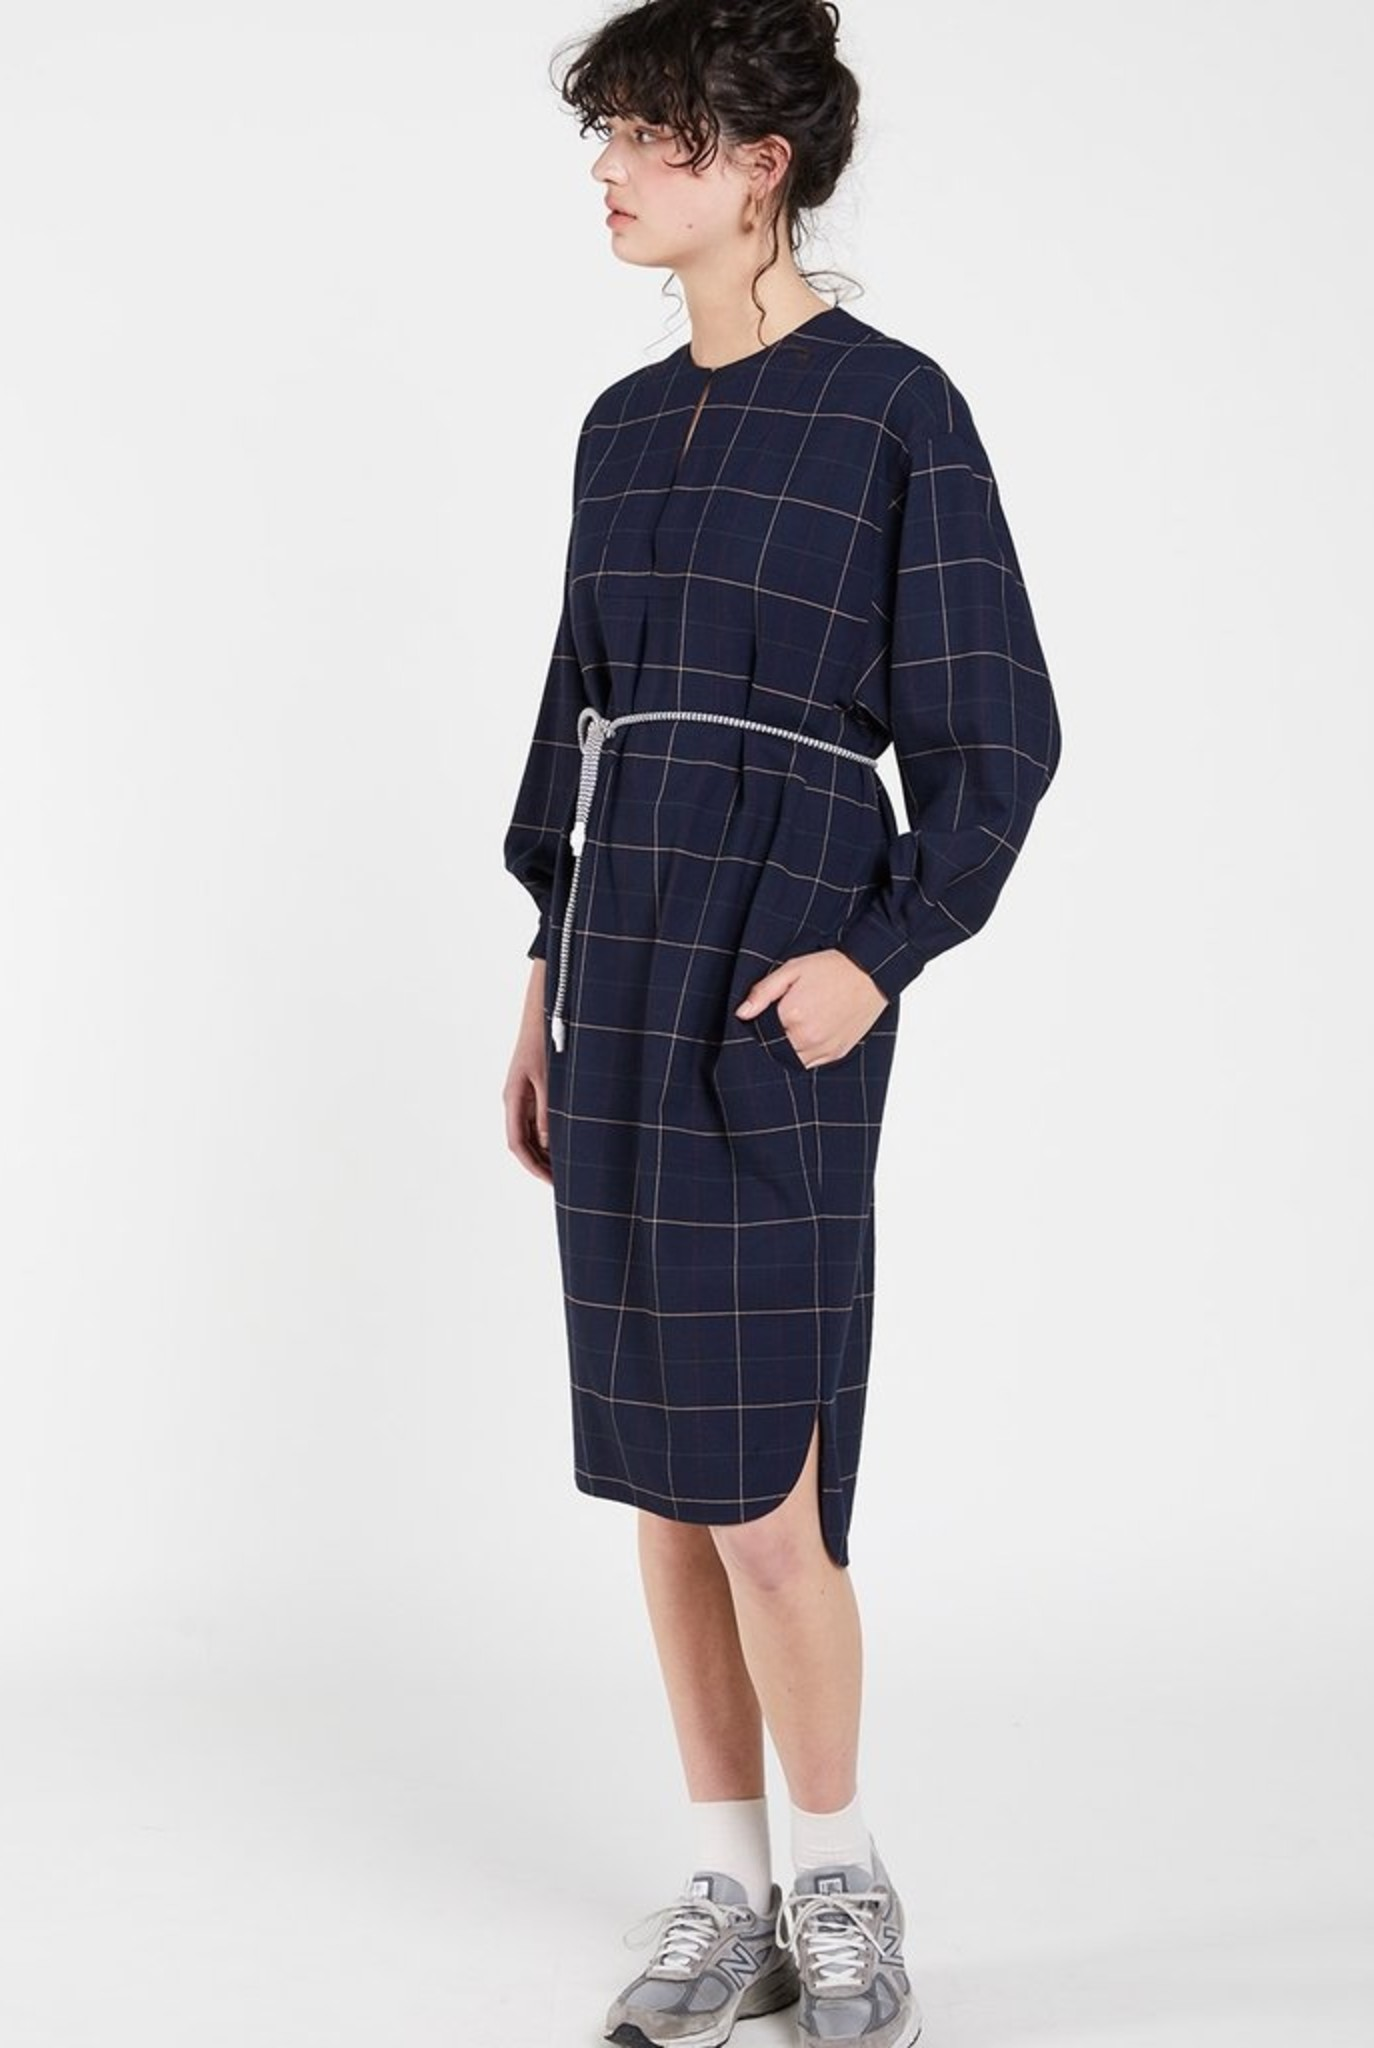 Smoke dress Navy Check